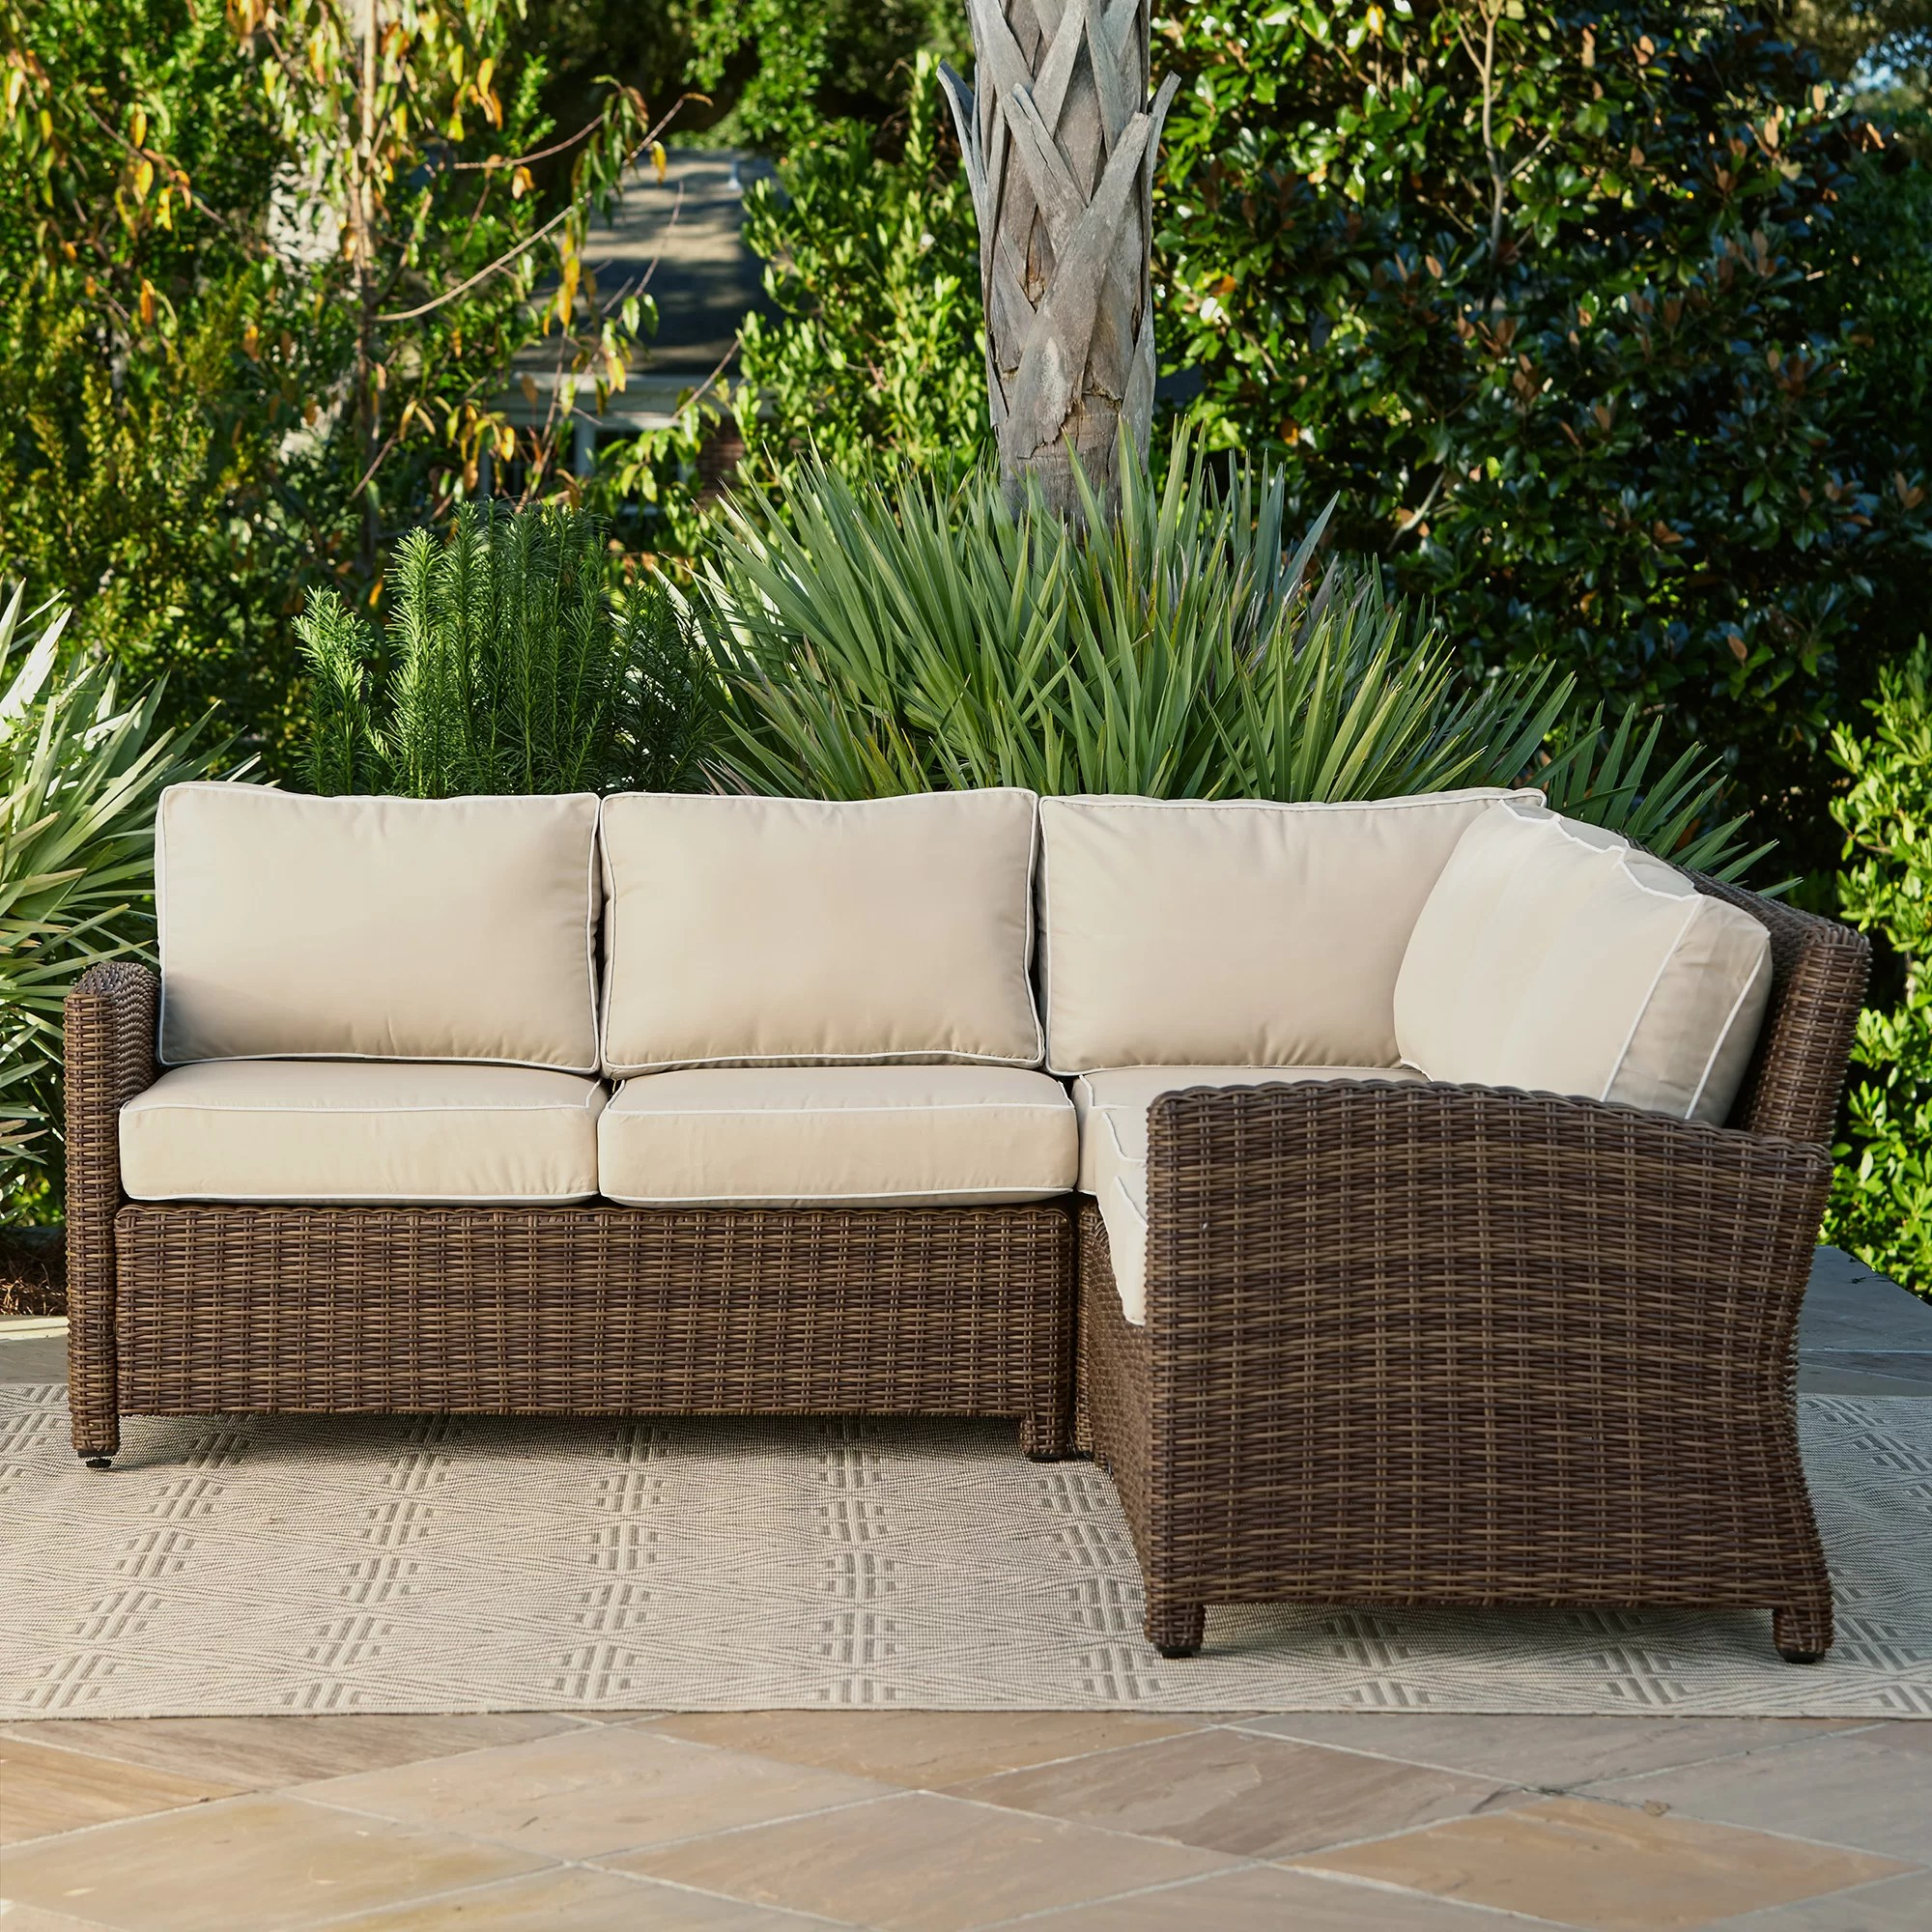 L Shaped Rattan Garden Sofa Birch Lane Lawson Wicker Sectional With Cushions And Reviews